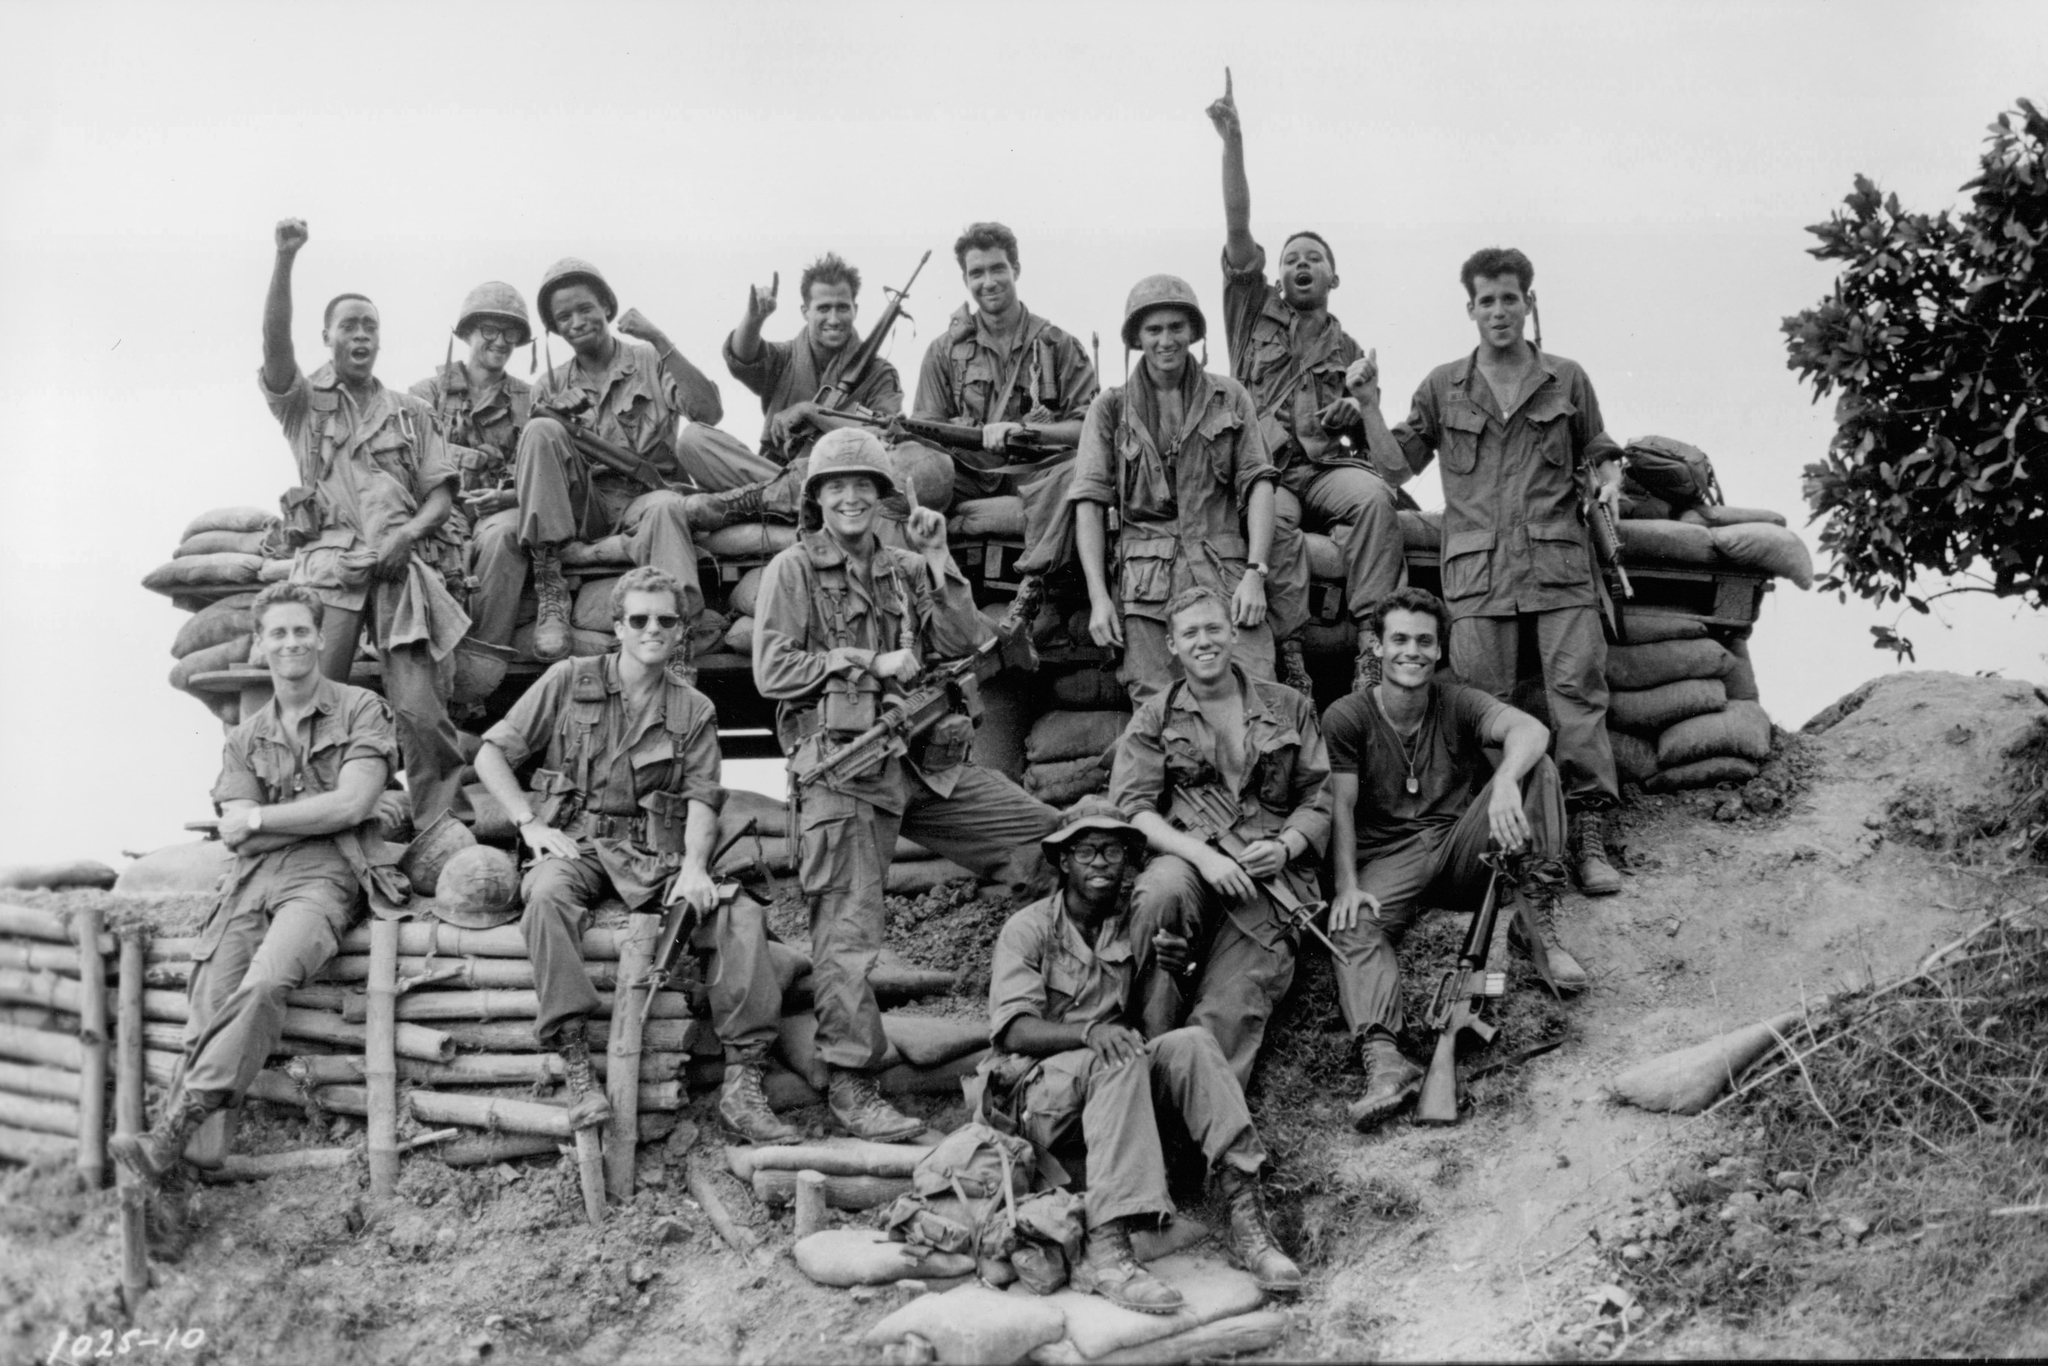 Don Cheadle, Dylan McDermott, Steven Weber, Courtney B. Vance, Anthony Barrile, Michael Boatman, Michael Dolan, Don James, Michael A. Nickles, Harry O'Reilly, Daniel O'Shea, Tommy Swerdlow, Tegan West, and Tim Quill in Hamburger Hill (1987)